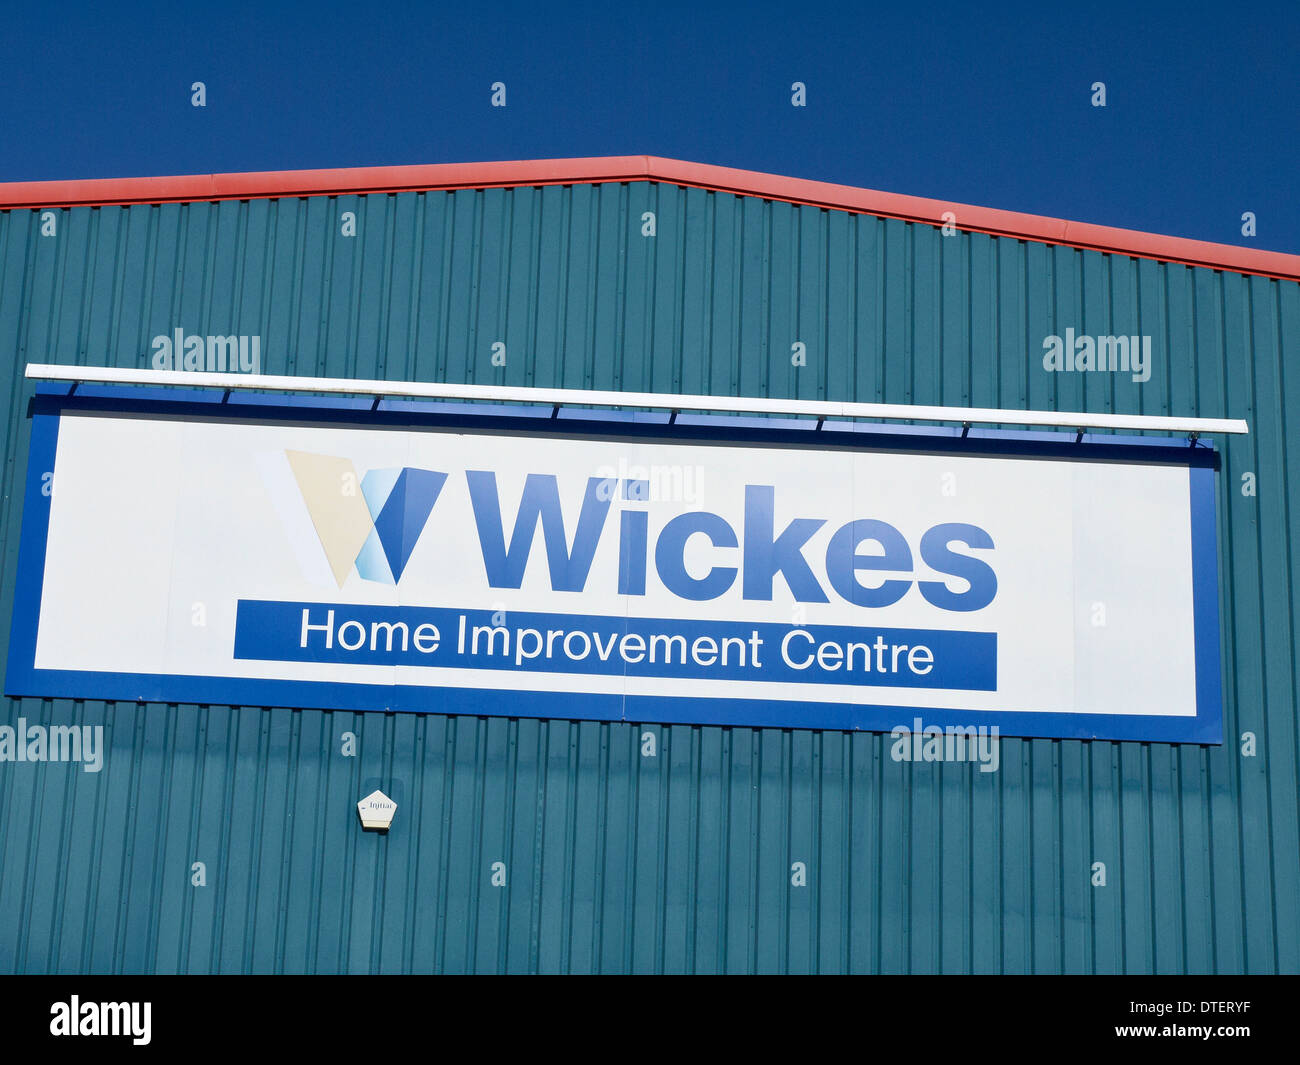 Wickes Home Stock Photos & Wickes Home Stock Images - Alamy